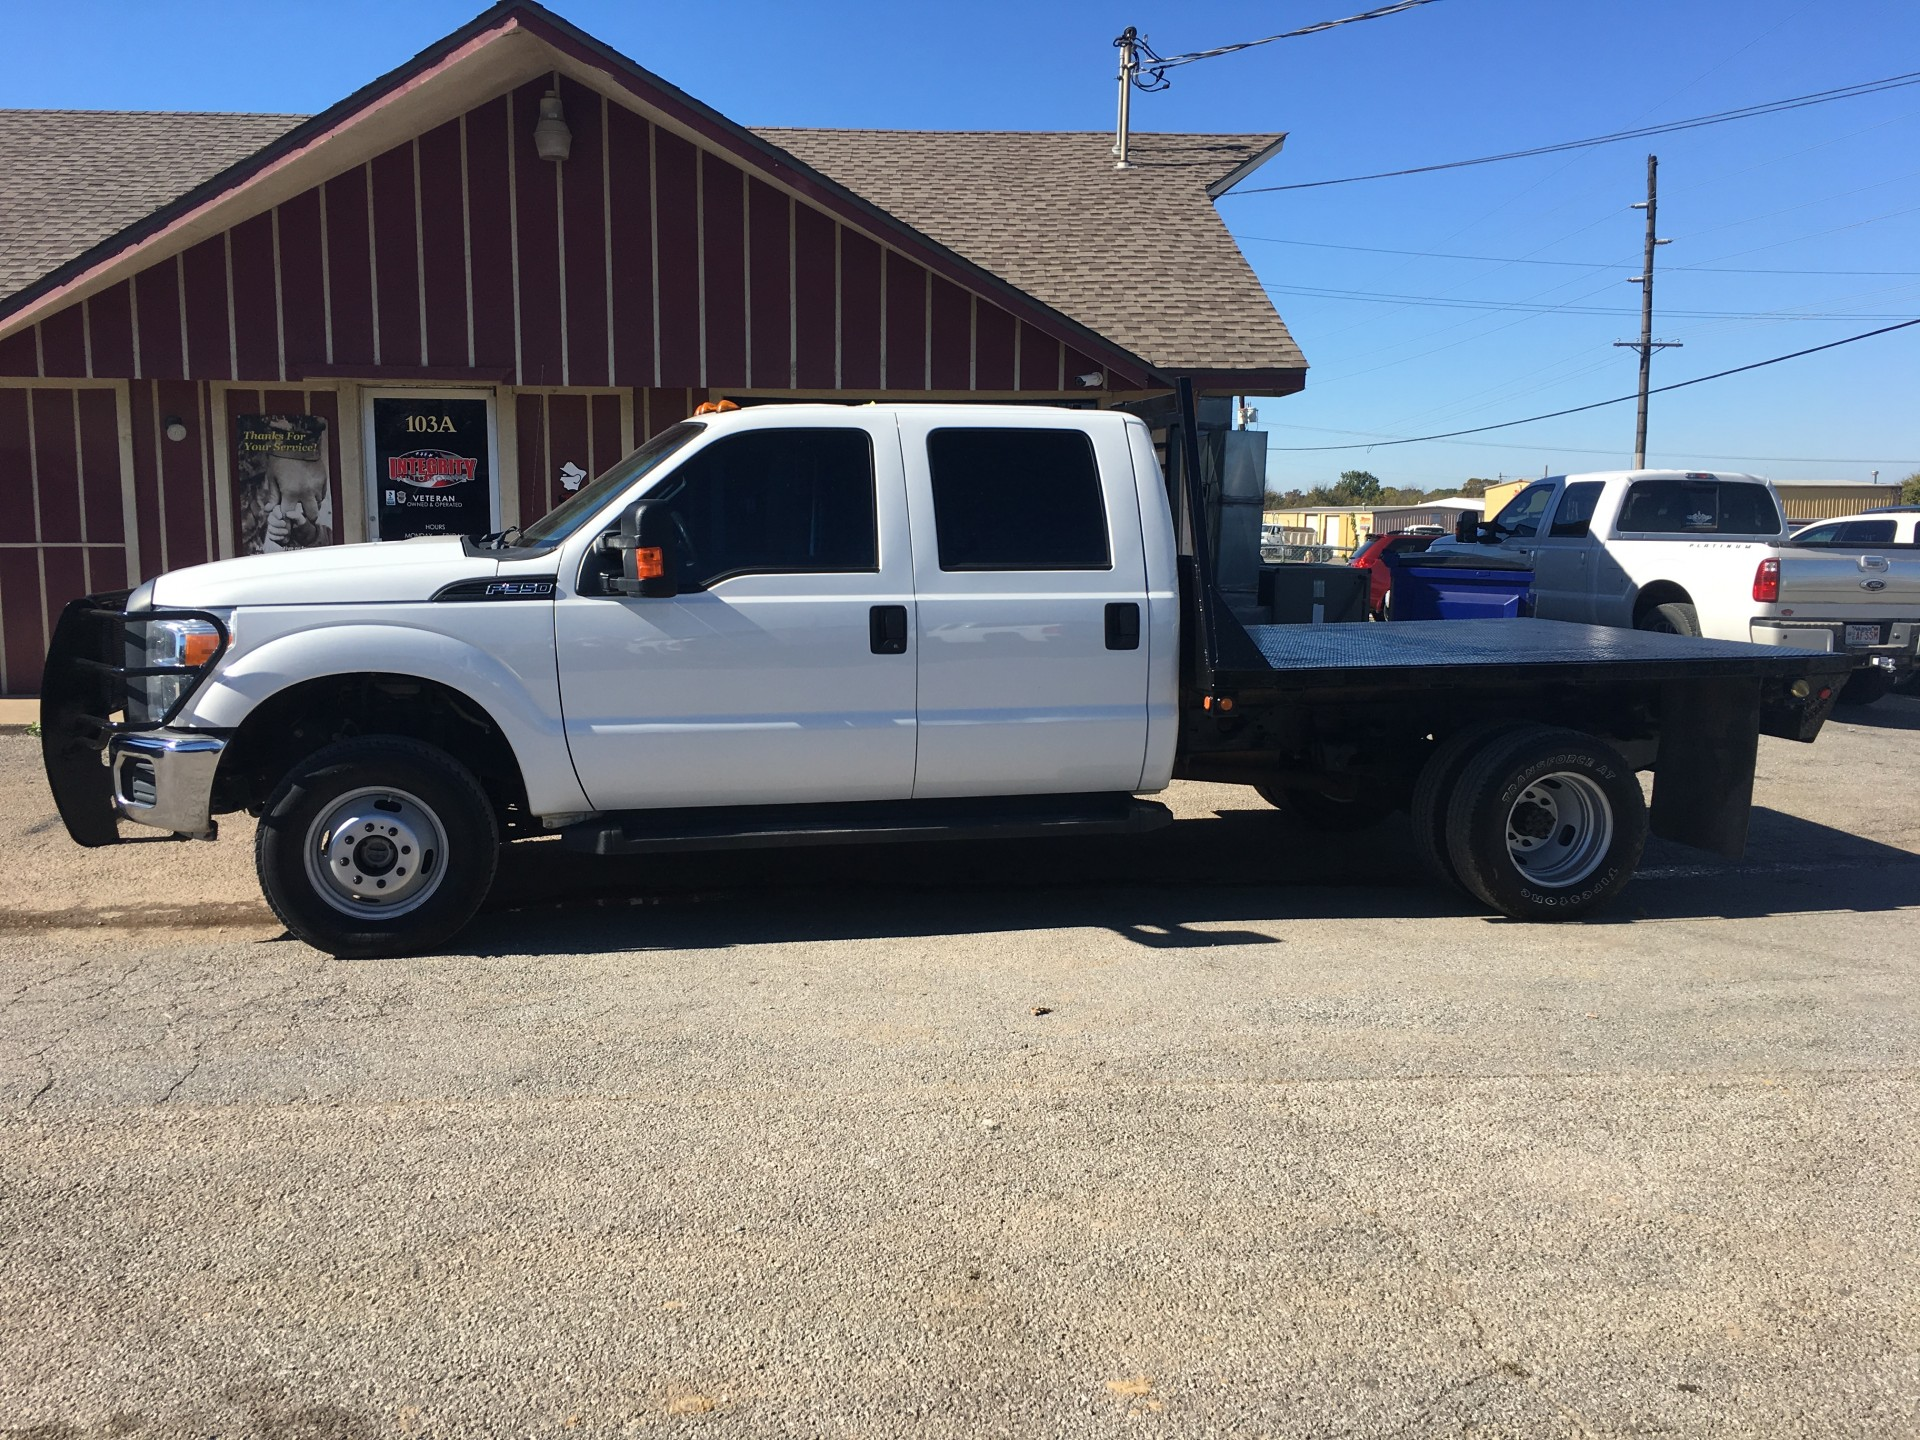 2014 ford f250 crew dually flatbed 4x4 diesel. Black Bedroom Furniture Sets. Home Design Ideas